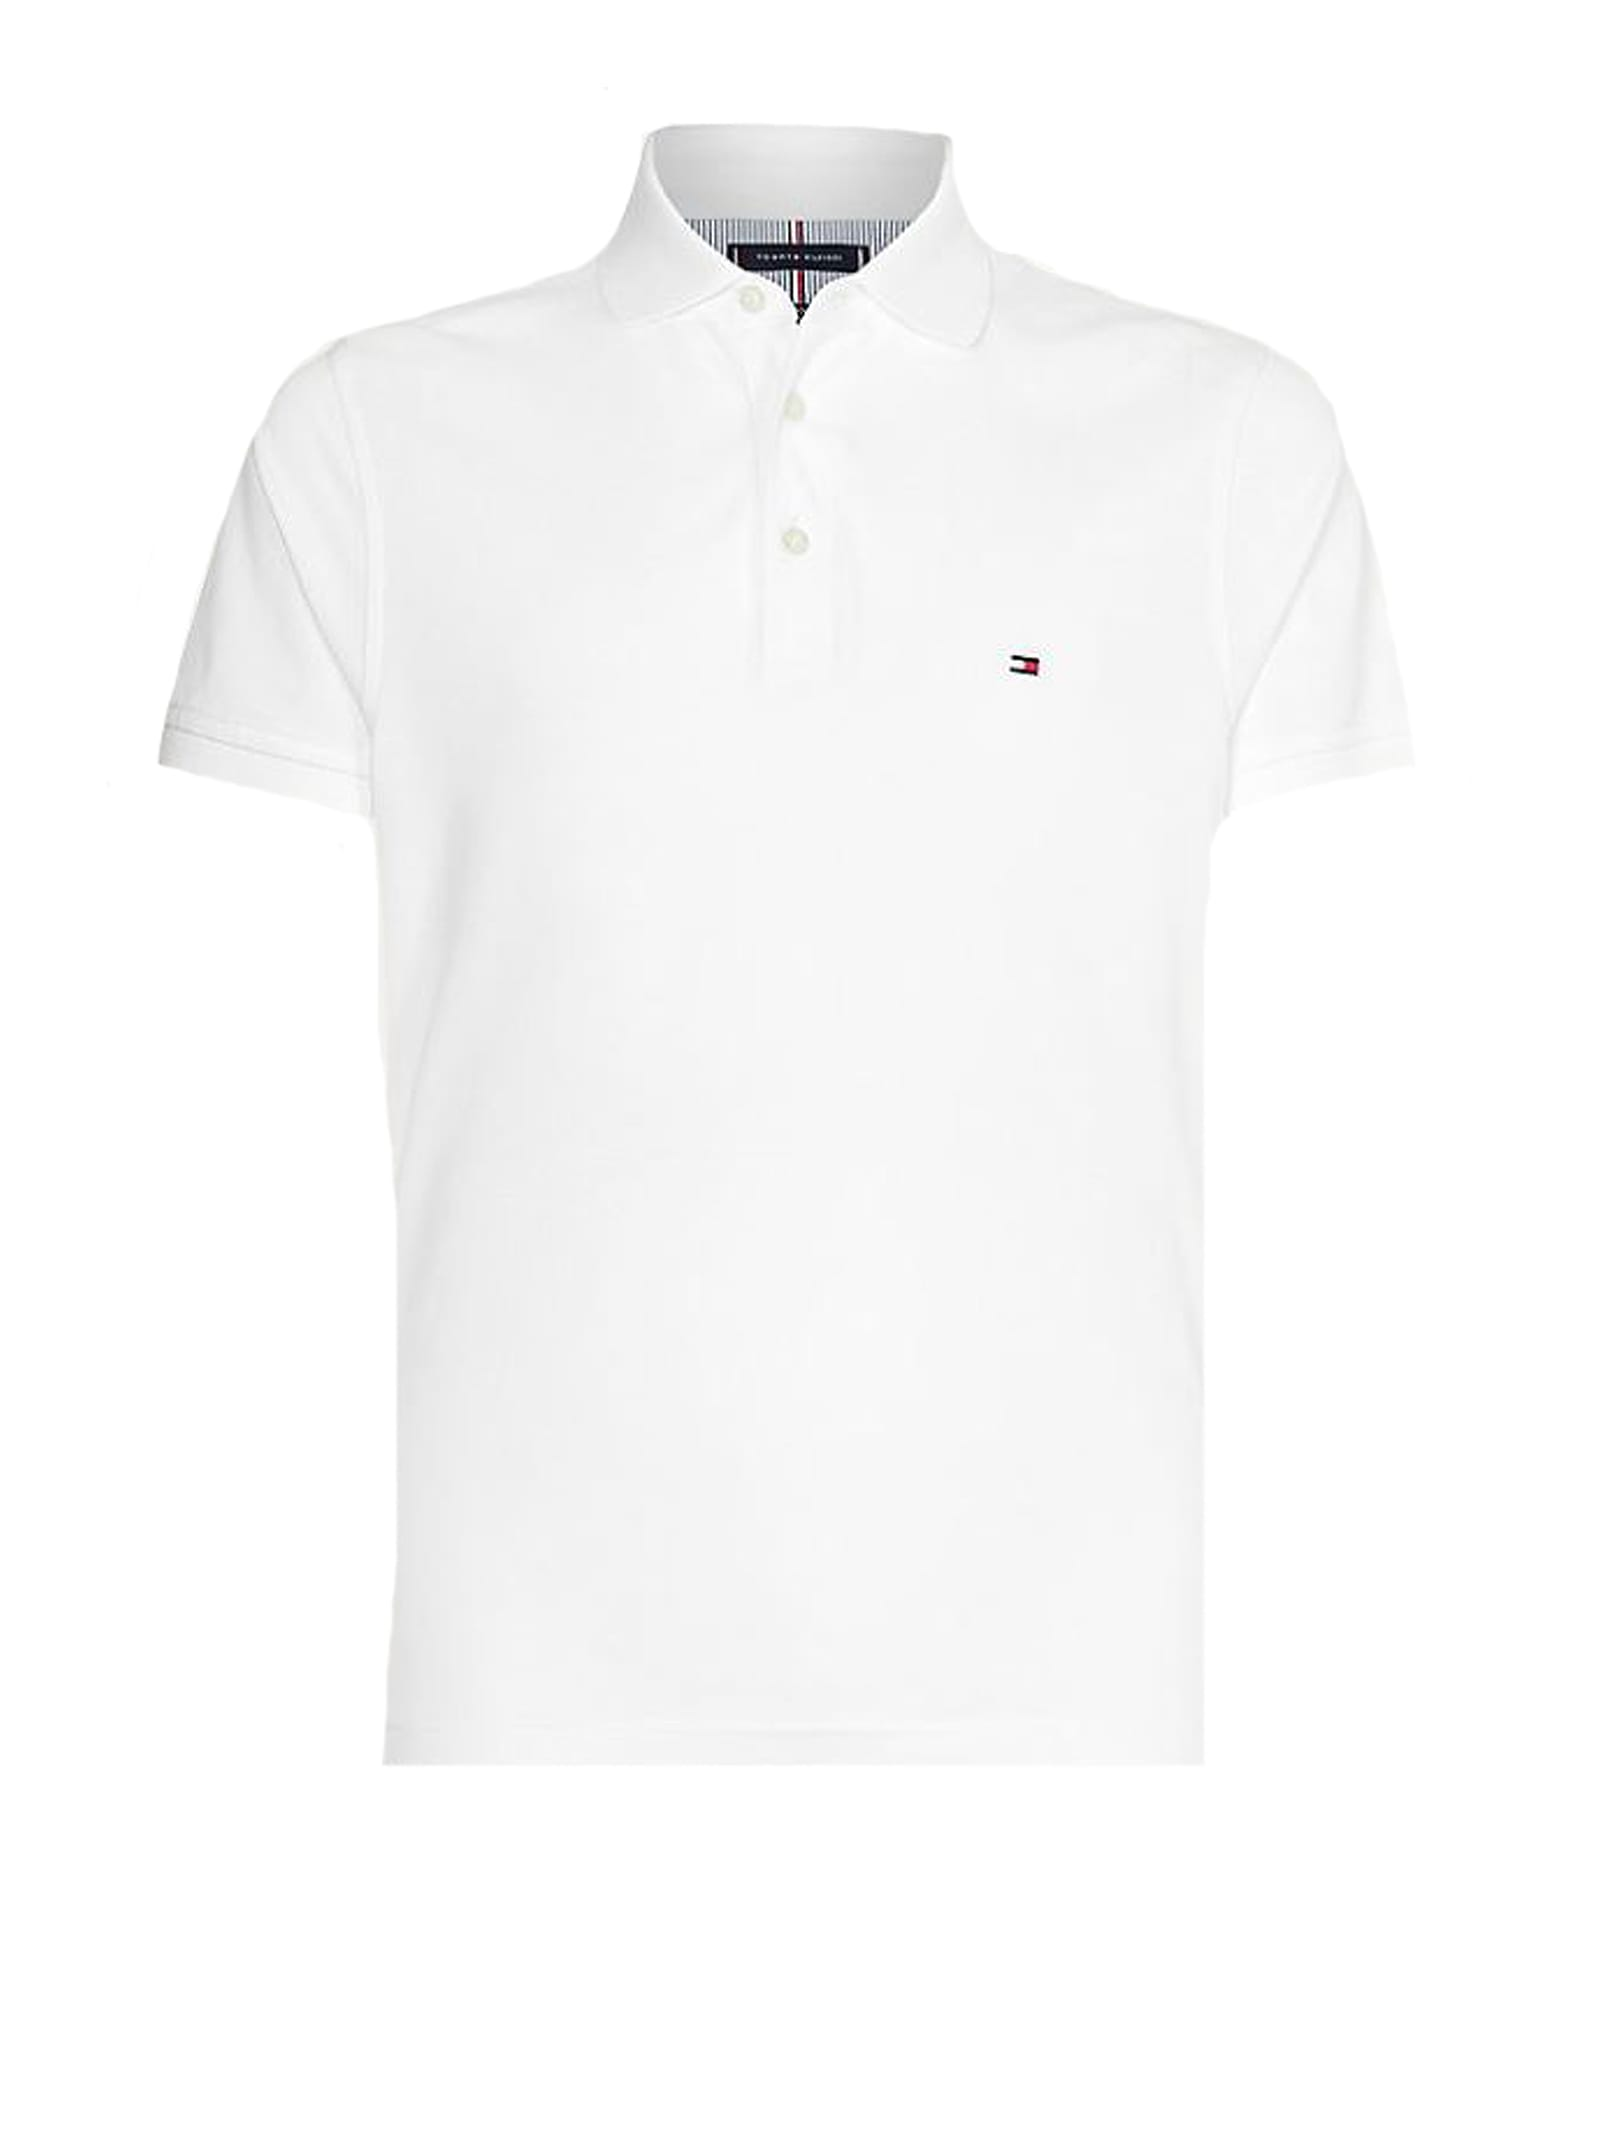 Tommy Hilfiger Polo Shirt In White Cotton